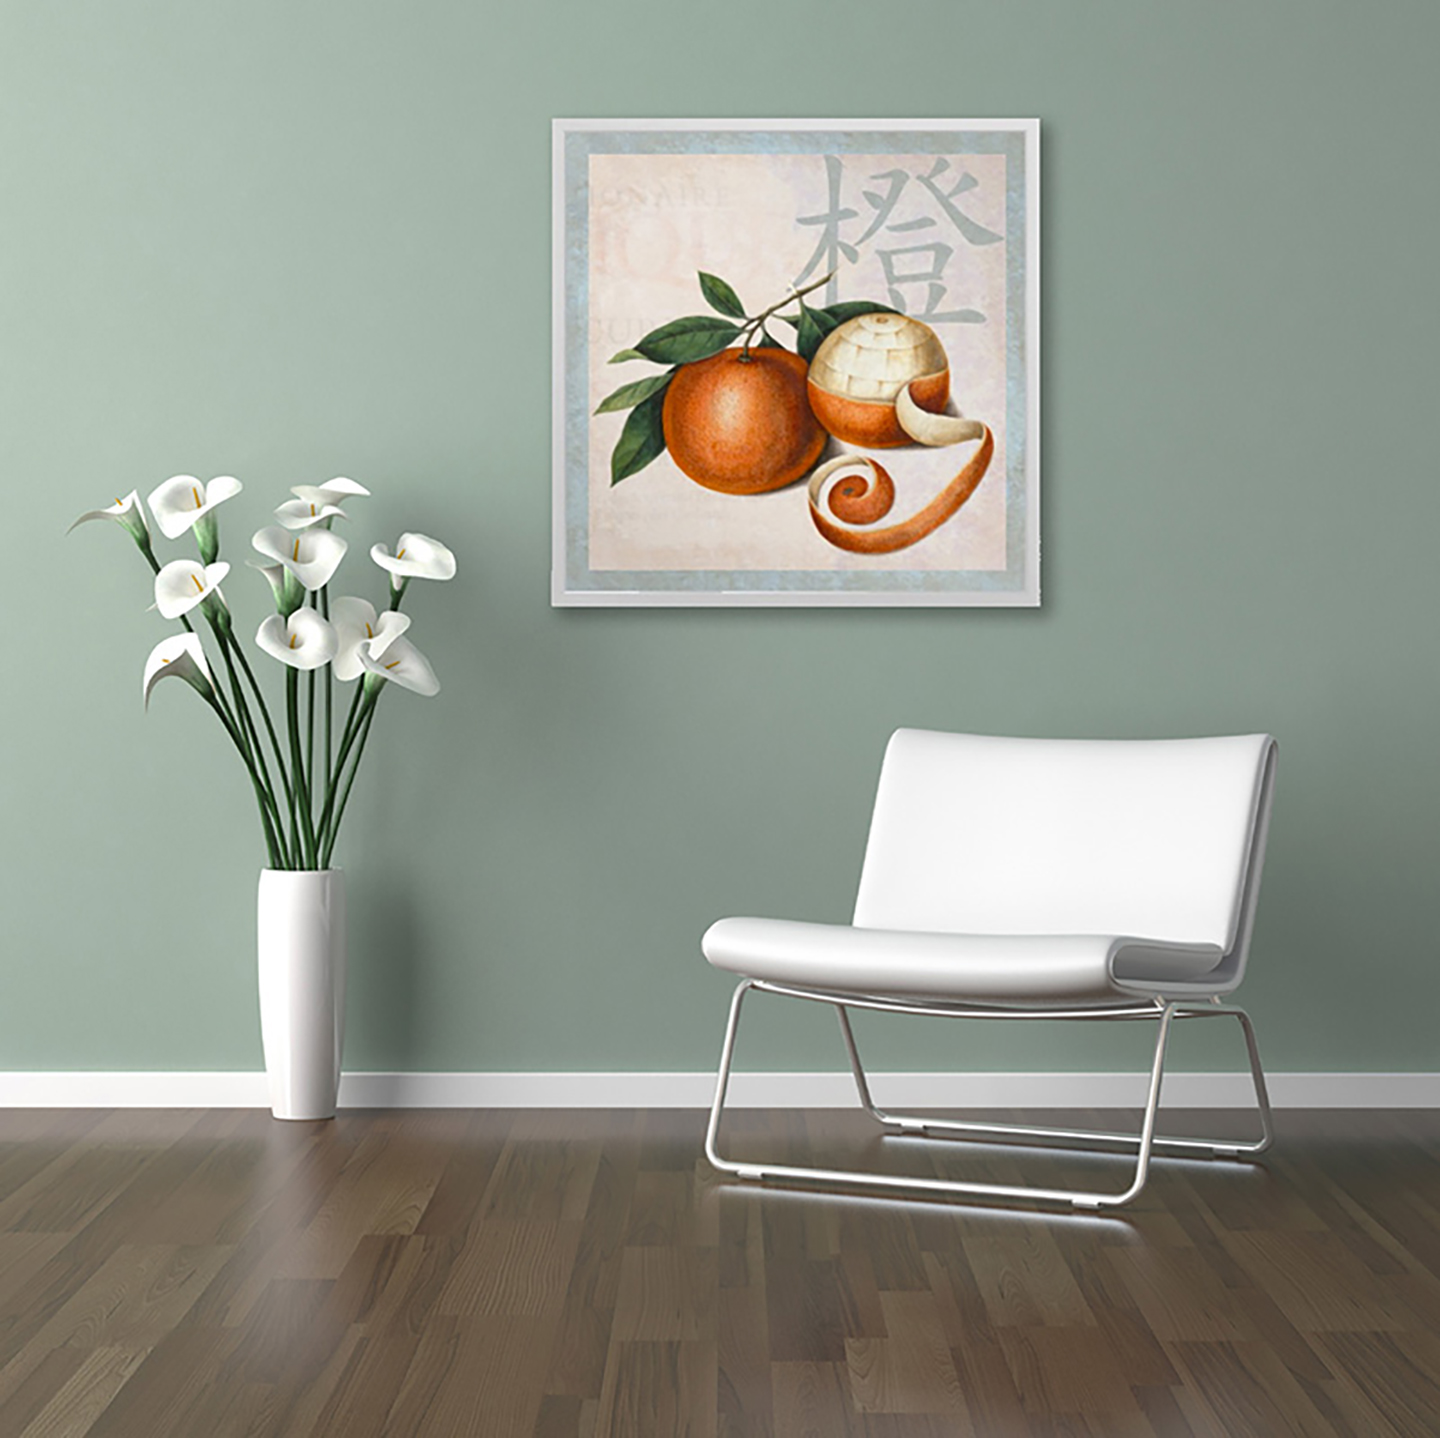 Chinese Oranges Poster